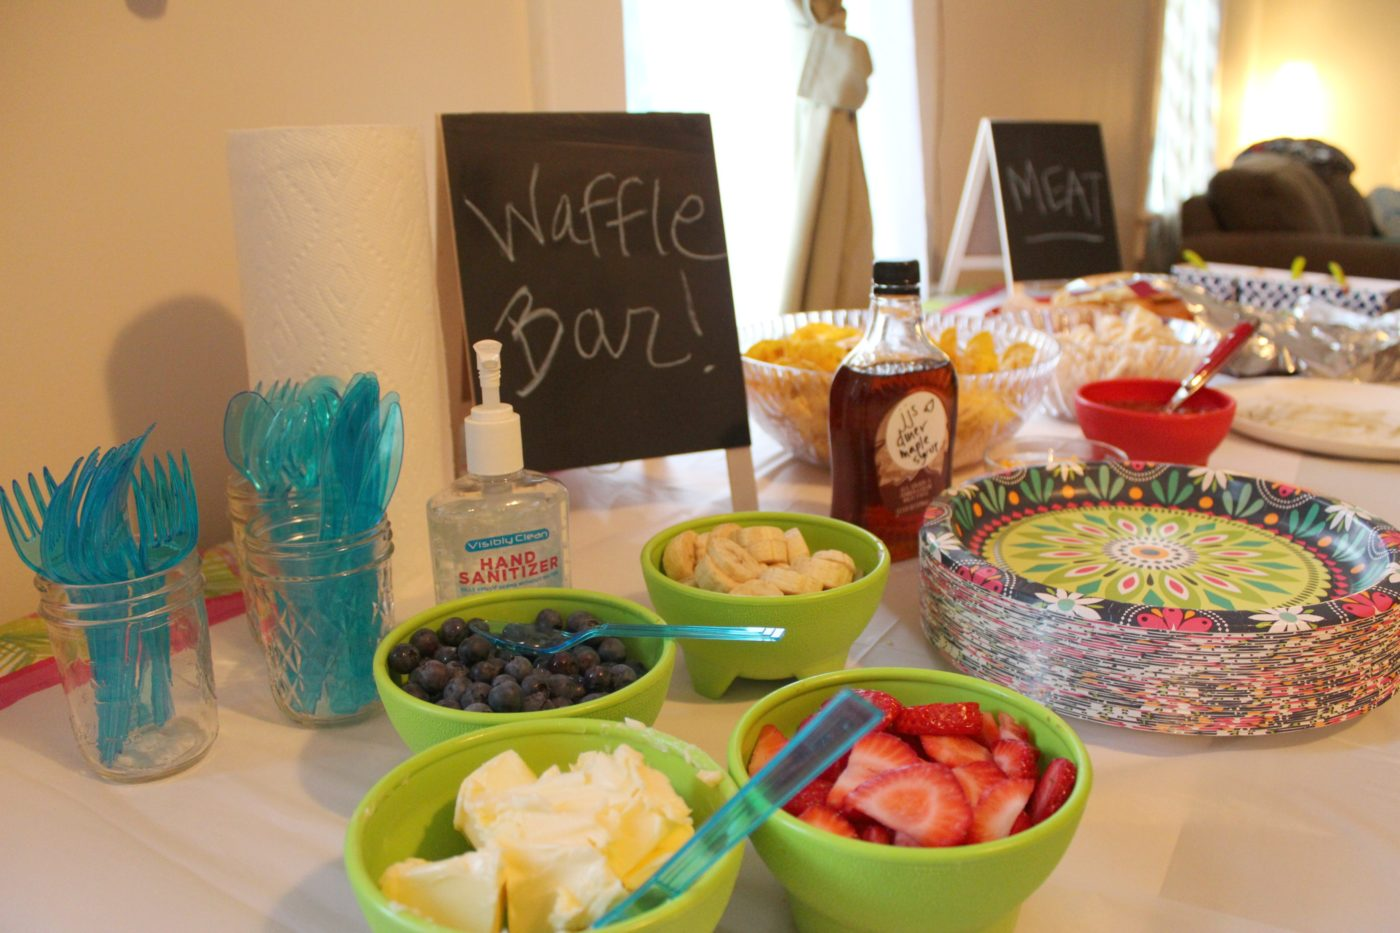 When throwing a Parks and Recreation party, you must have waffles; Leslie Knope loved waffles.